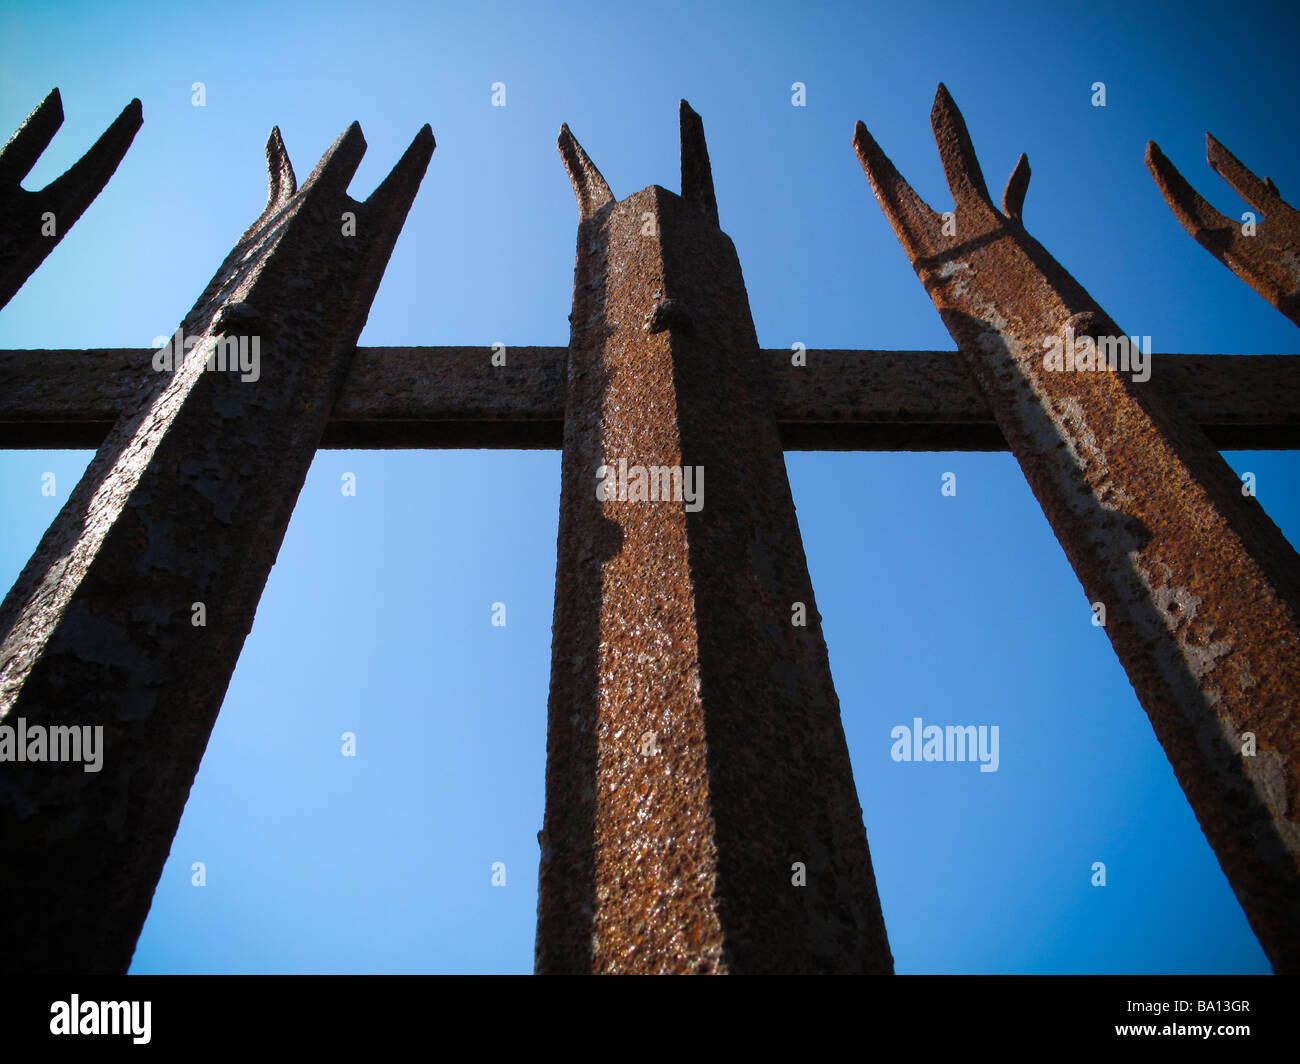 Top of rusty palisade security fence - Stock Image